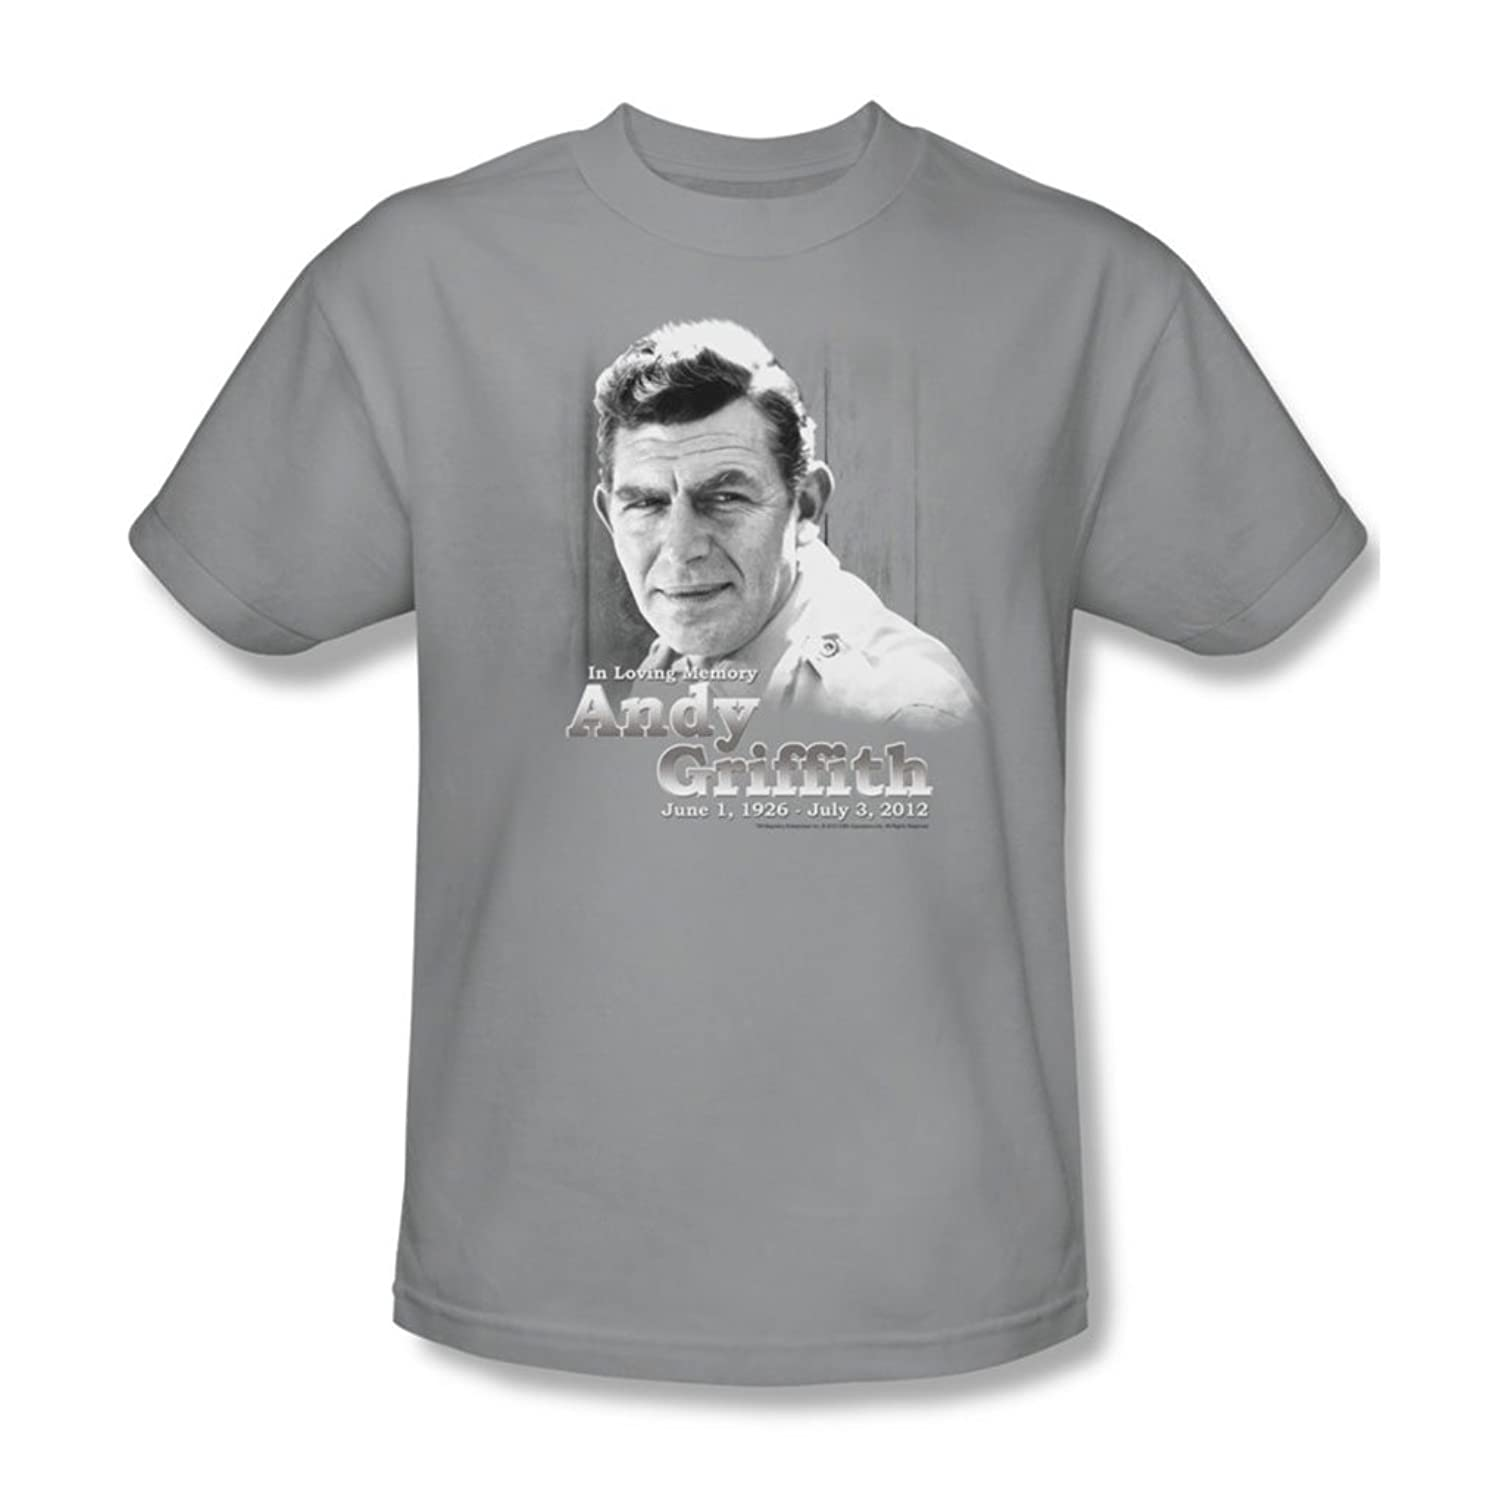 Andy Griffith - Mens In Loving Memory T-Shirt In Silver